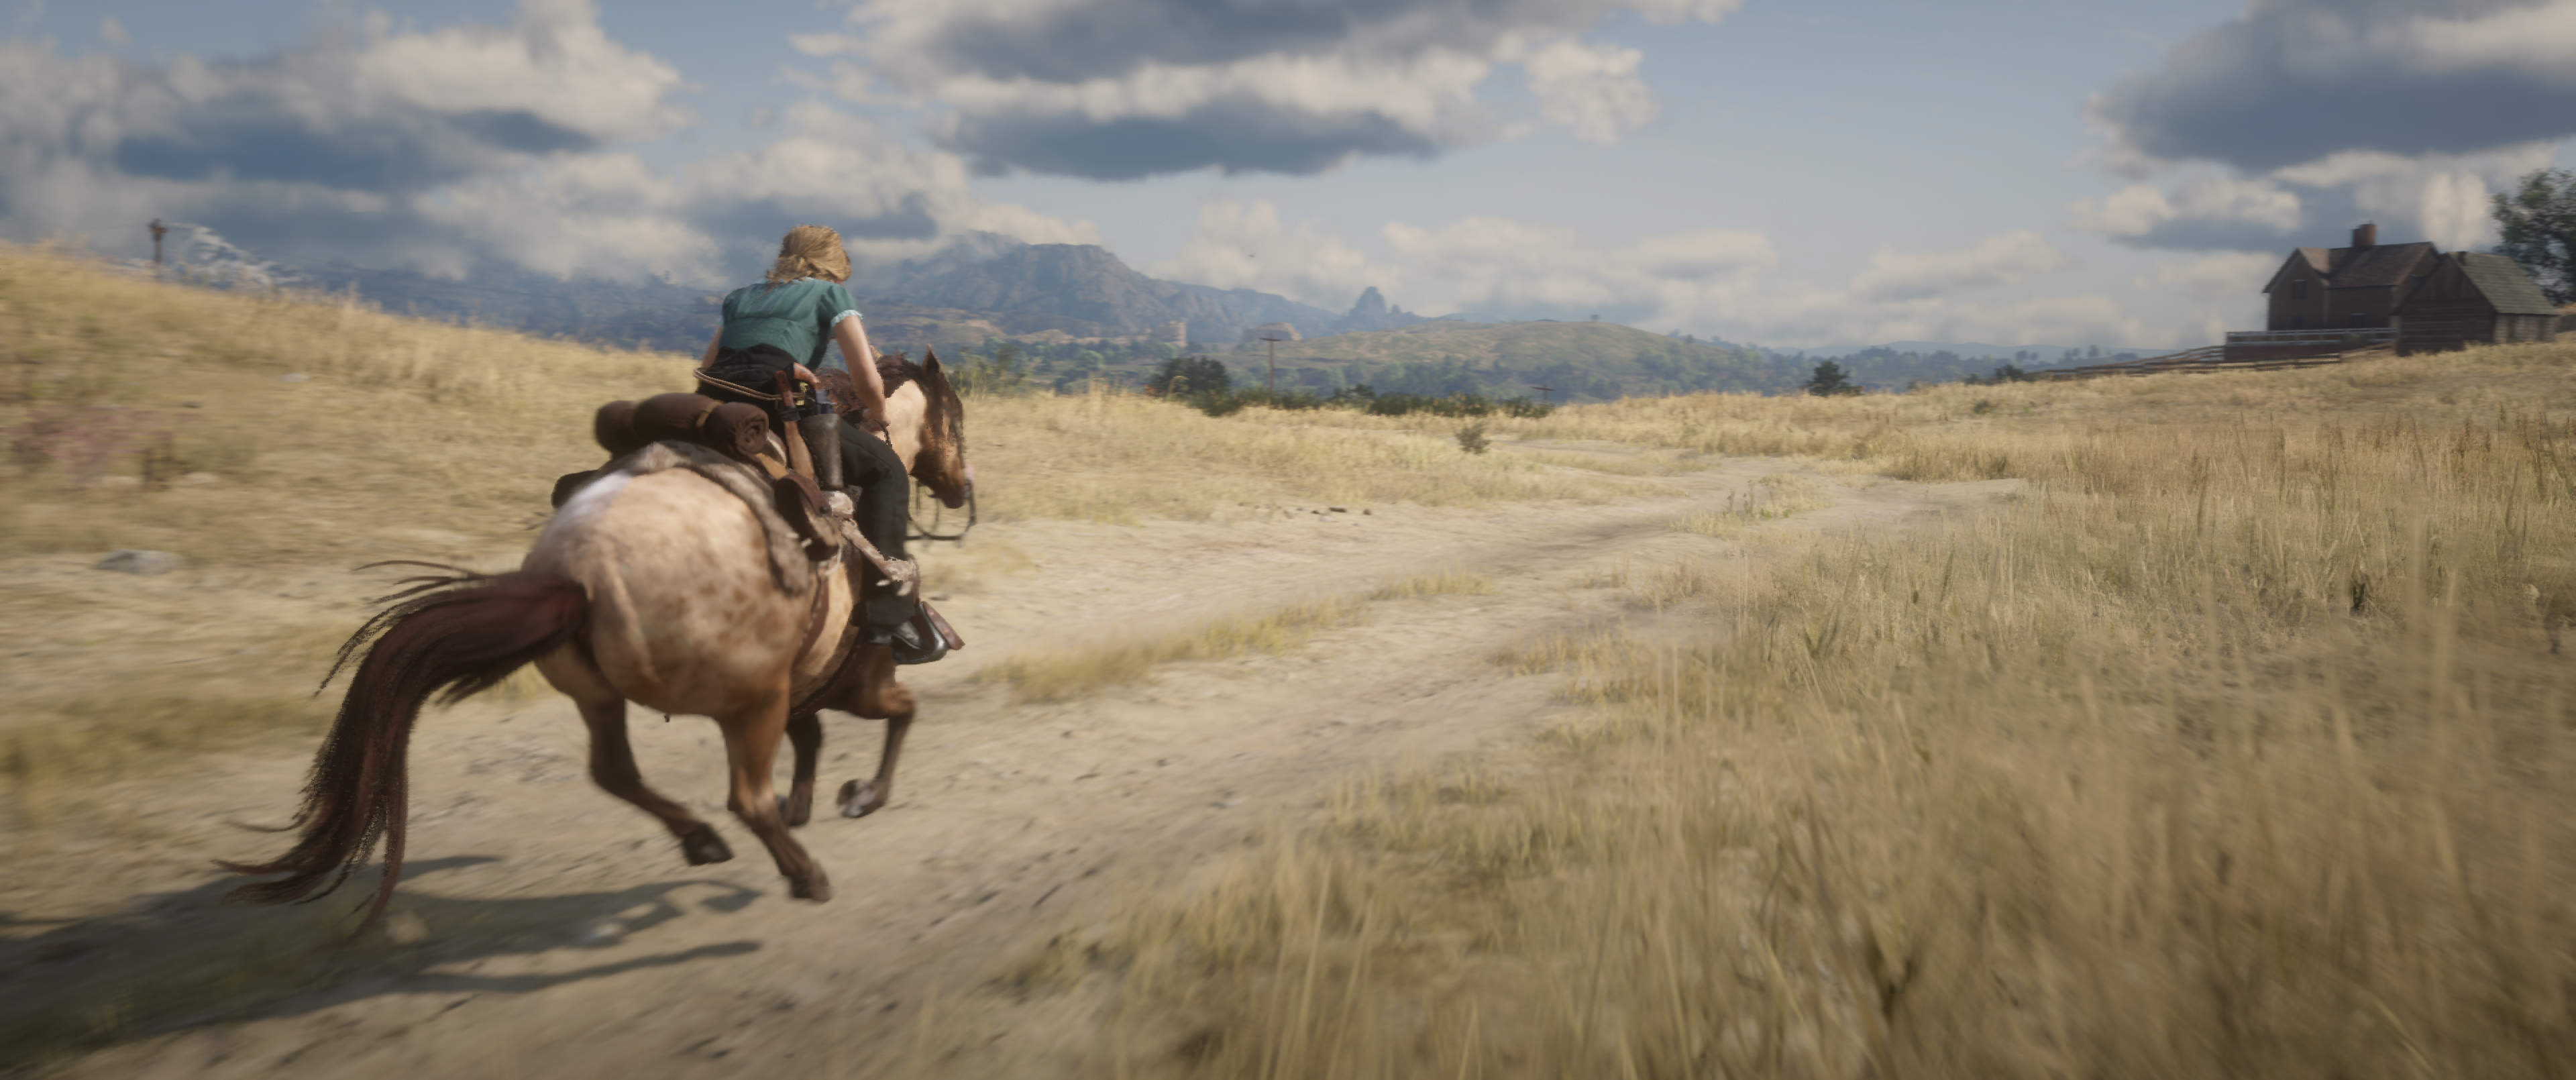 Red-Dead-Redemption-2-20190609064408-2.p